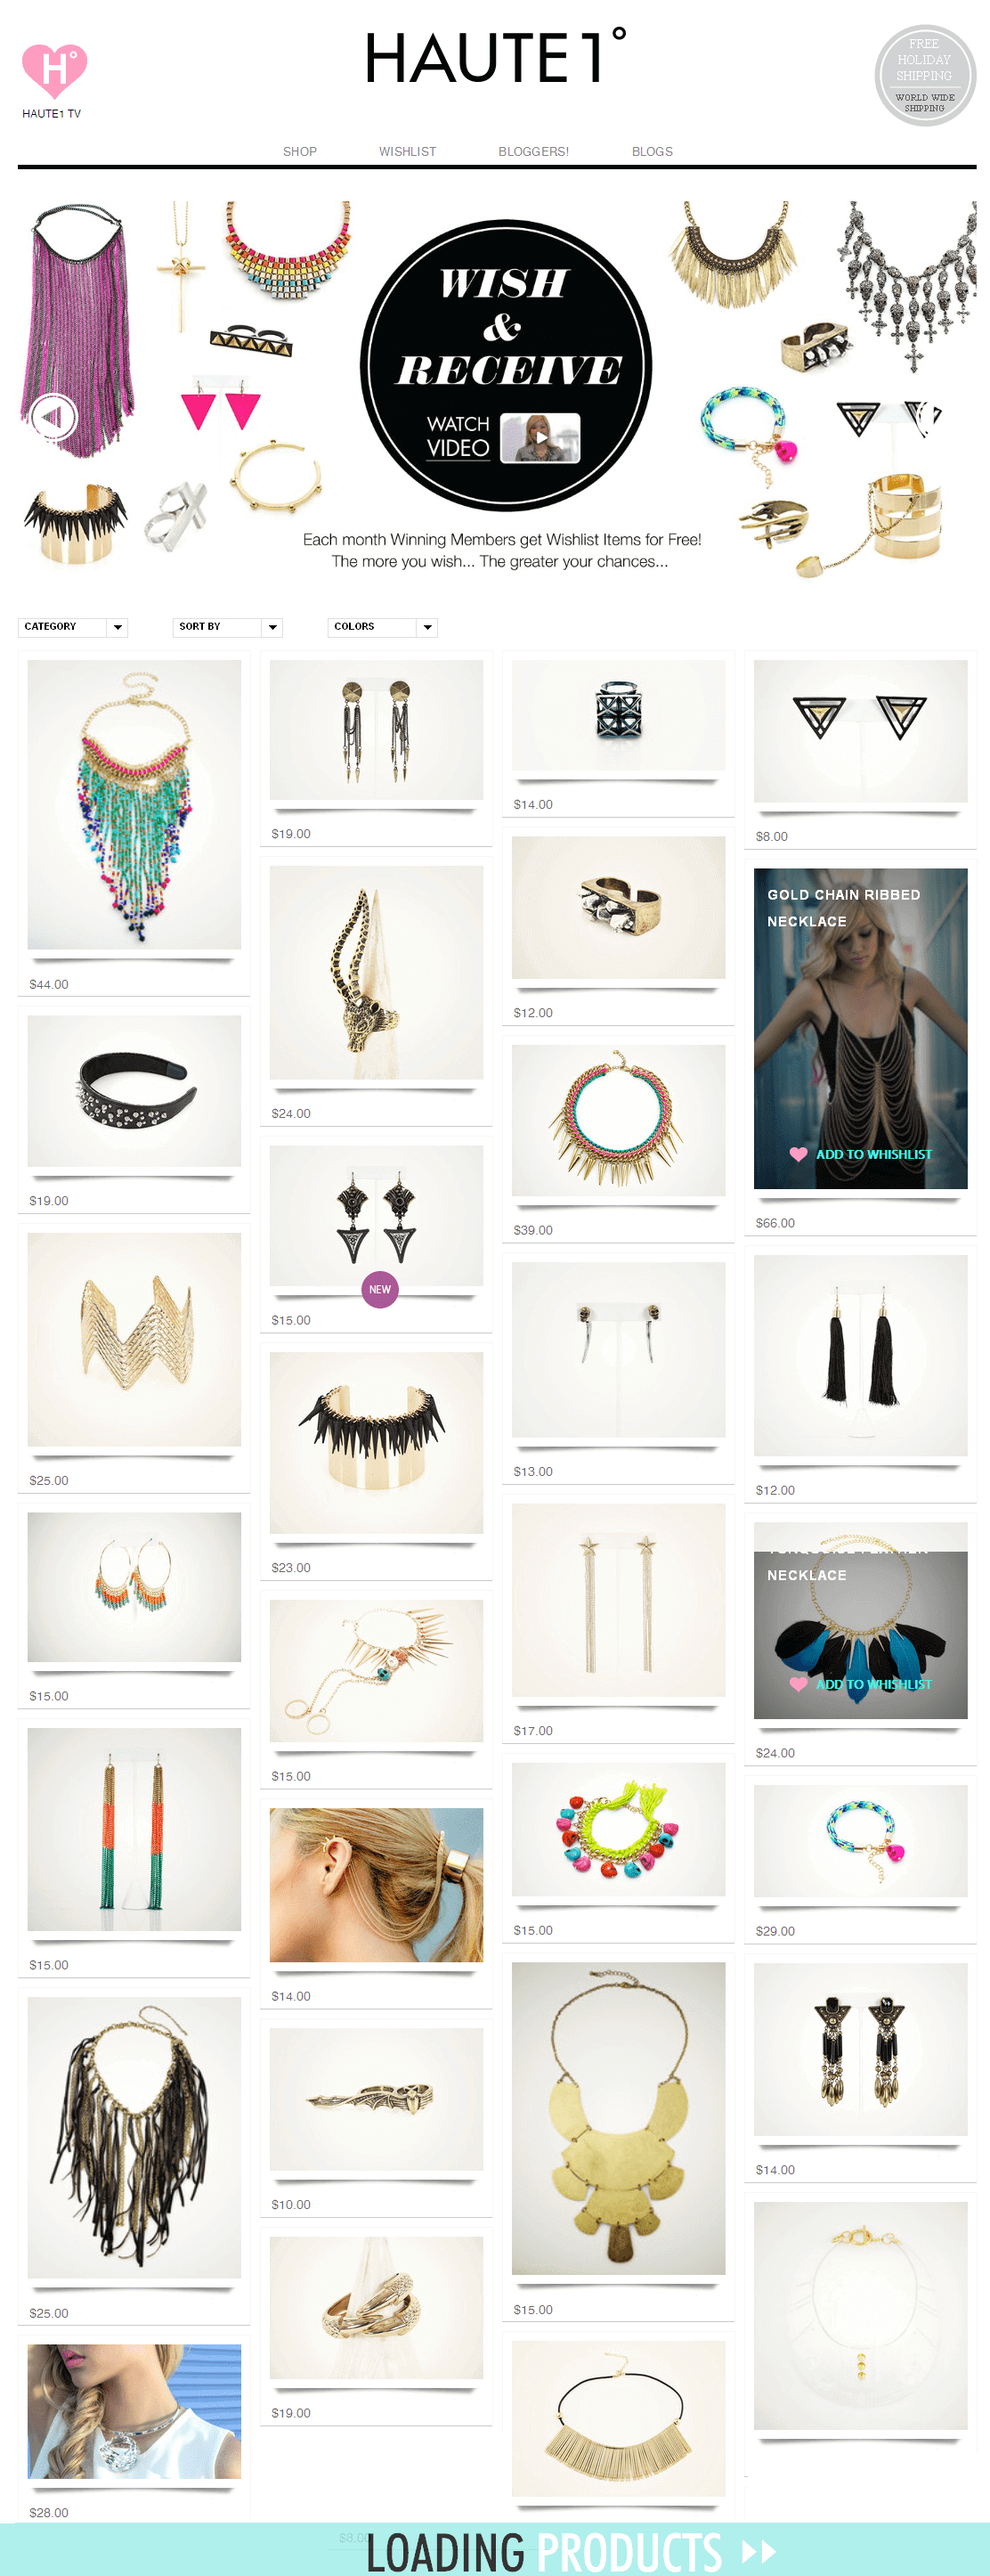 A Shopify Powered Online Store for Selling Fashion Accessories